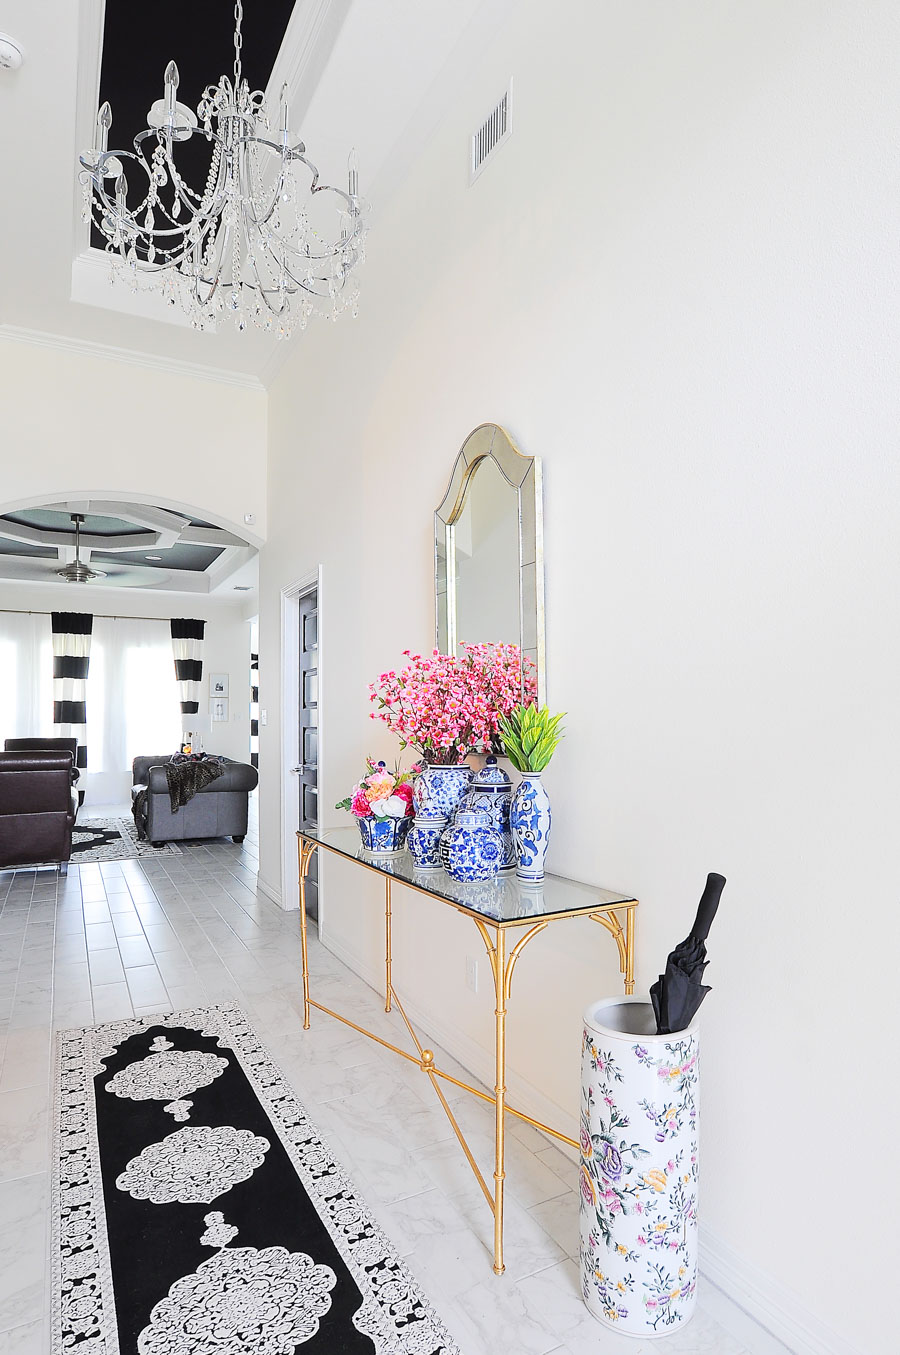 Why I chose to have all white walls in my new home. (I love all the contrast and glam decor in this foyer space with chinoiserie vibes!)